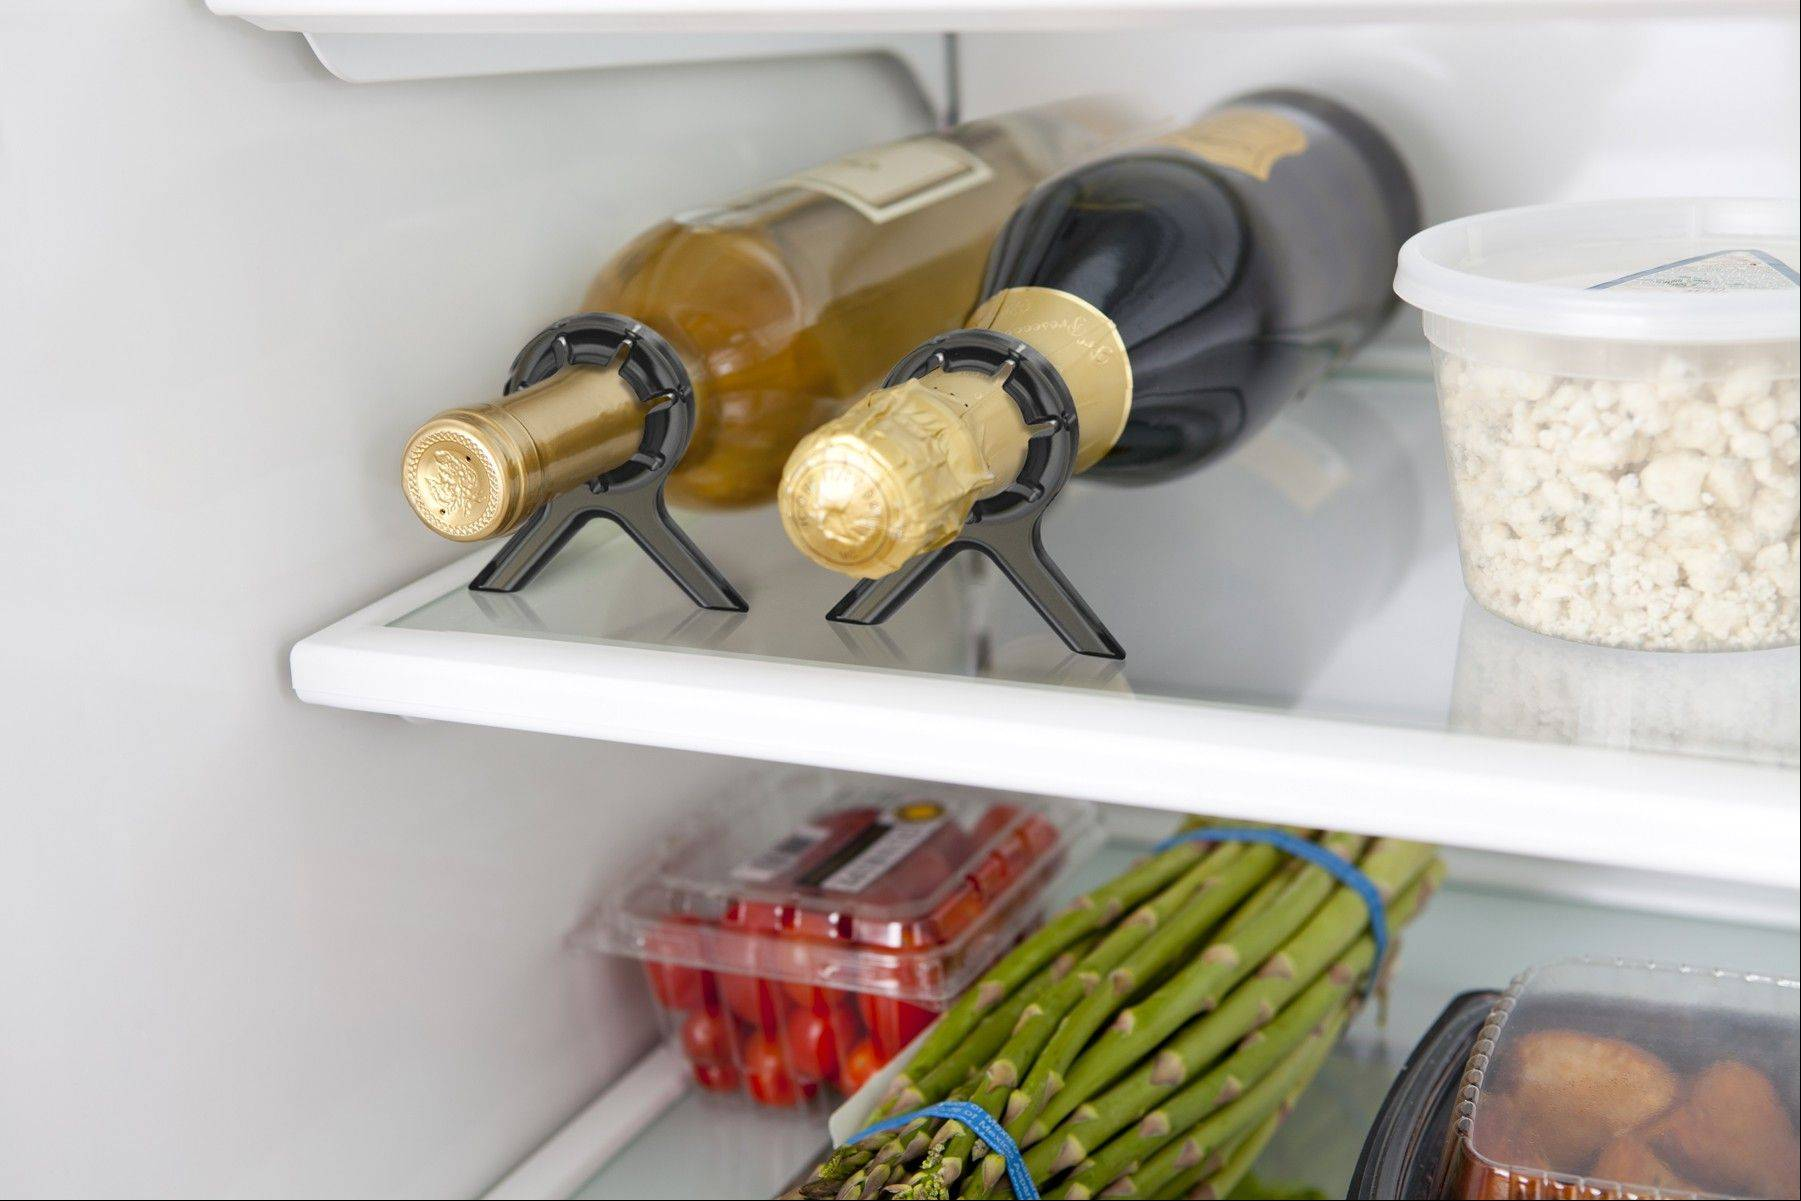 Stop those bottles of wine from rolling around in the fridge with the Vine, a device that keeps the bottles in place and invented by Marc Rumaner of Aurora.